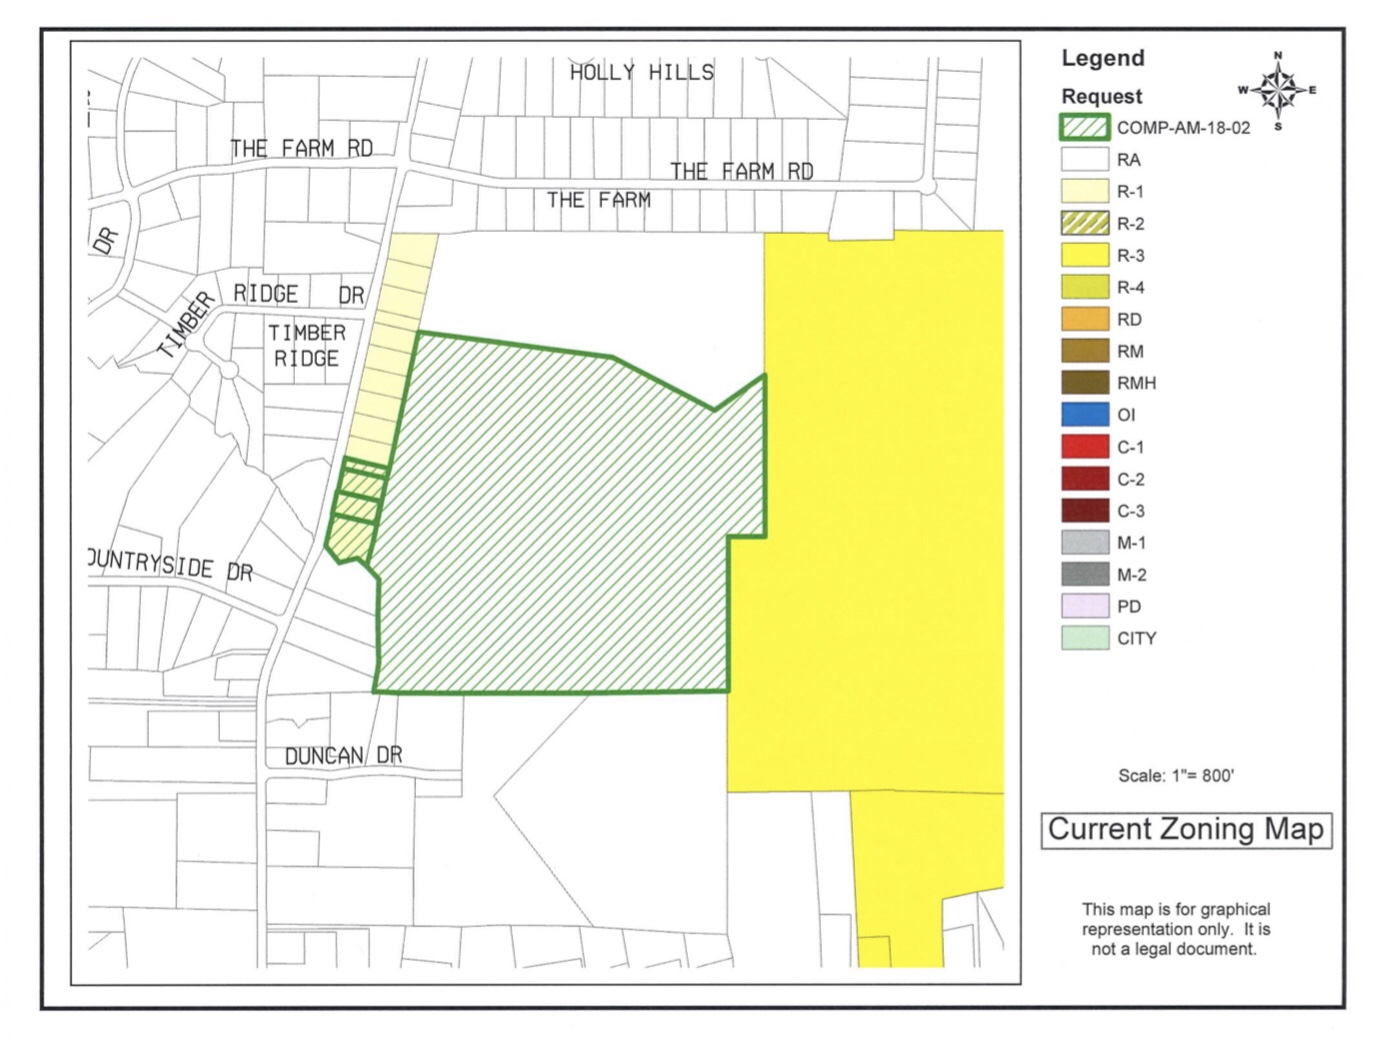 Map of North Ola Henry 163 LLC rezoning request